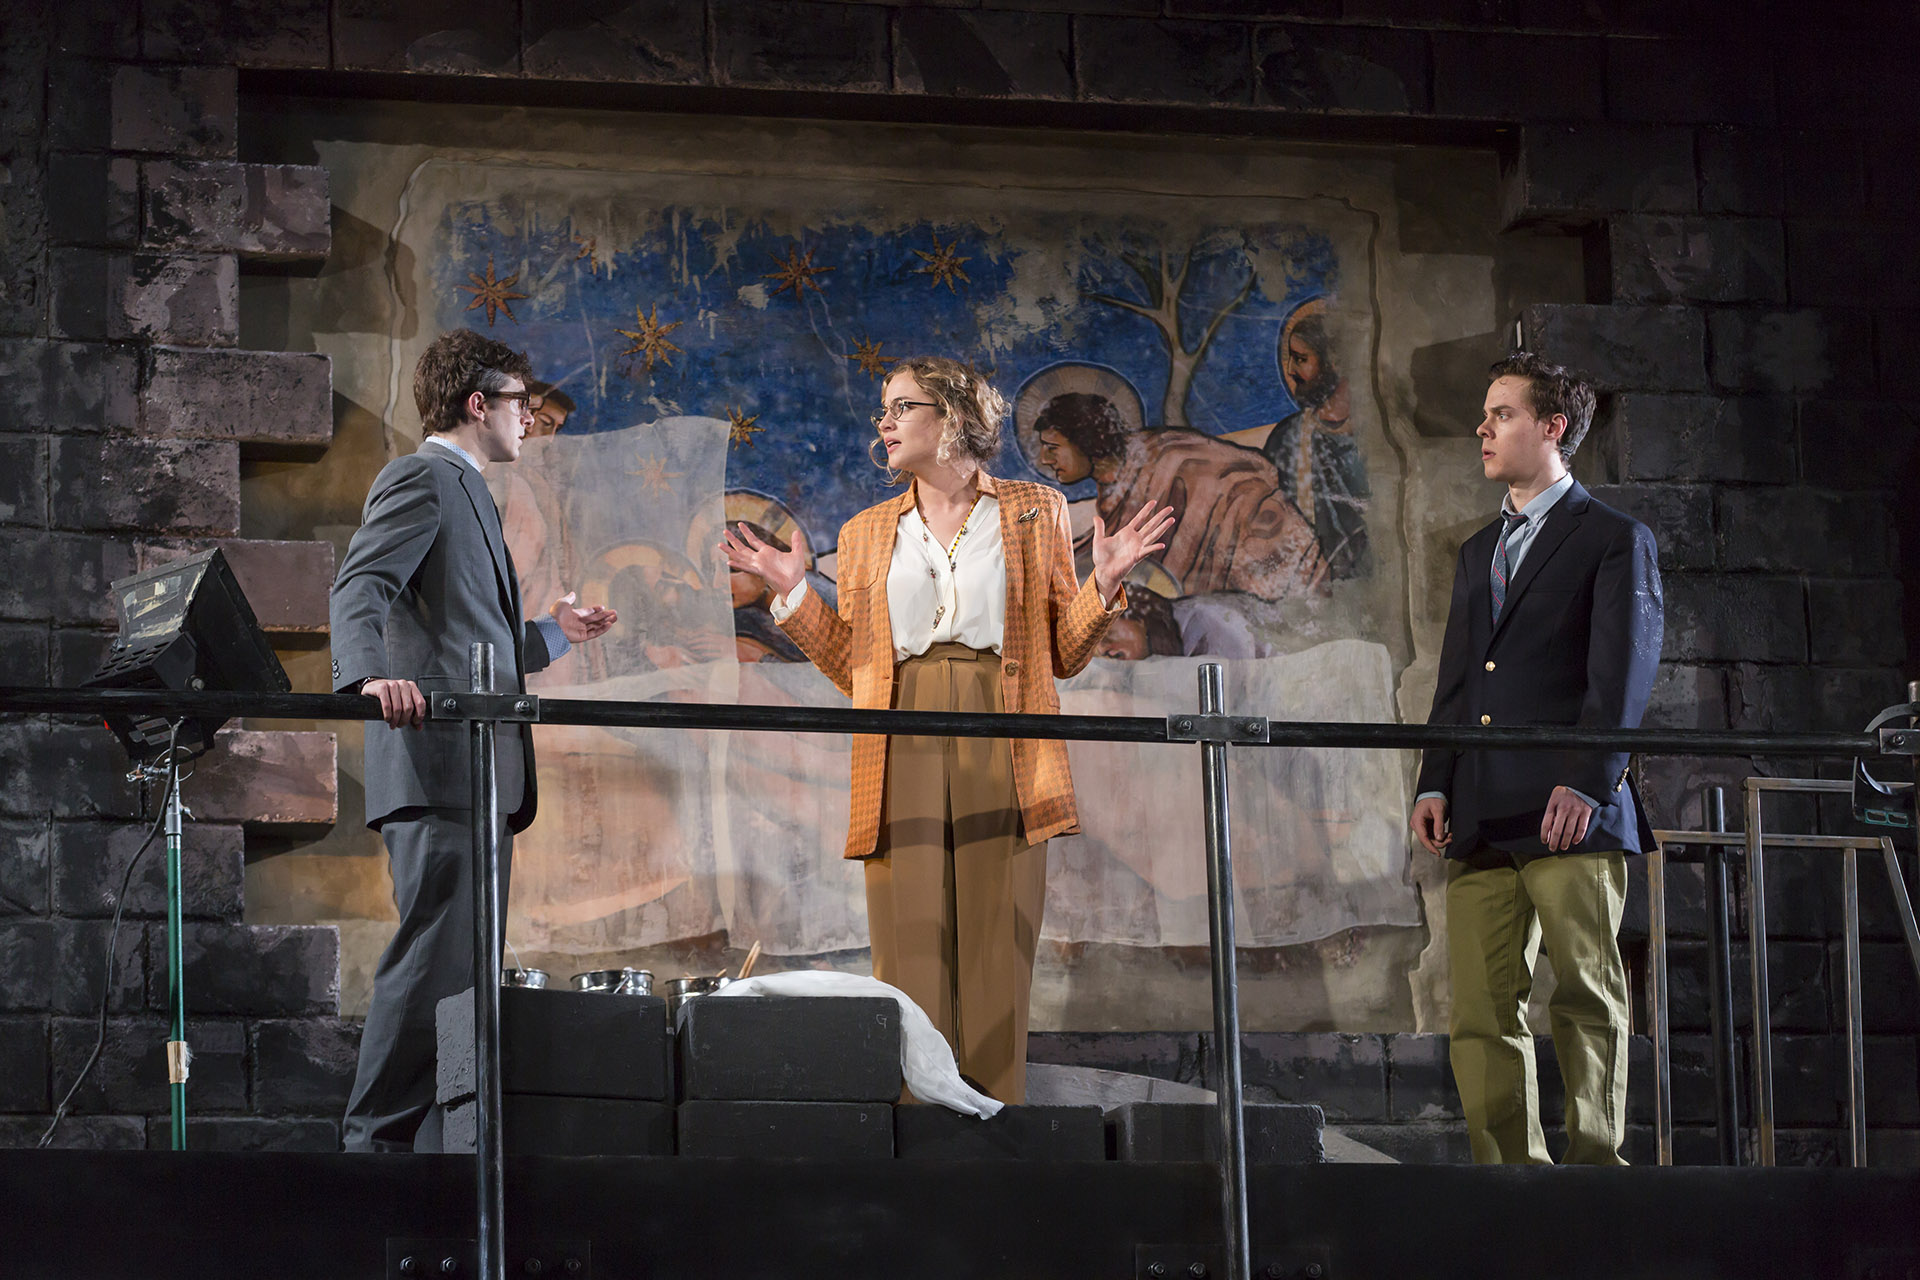 Patrick Madden ('18), Stella Baker ('18), and Steven Lee Johnson ('18) in PENTECOST by David Edgar, directed by Lucie Dawkins ('18), Yale School of Drama, 2017. Photo by T. Charles Erickson.